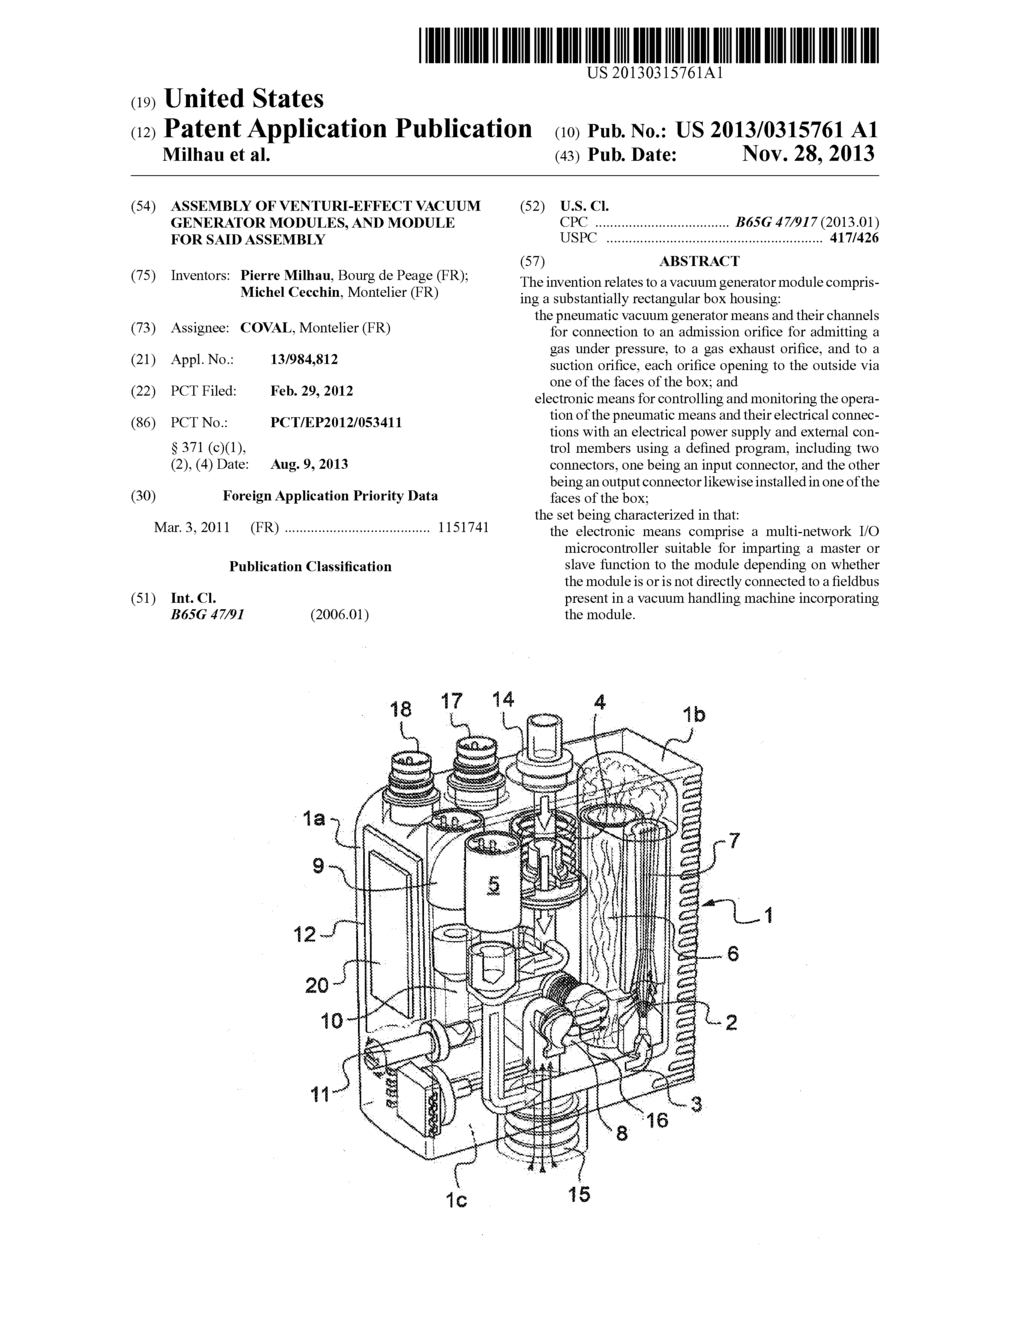 assembly of venturi effect vacuum generator modules and module for